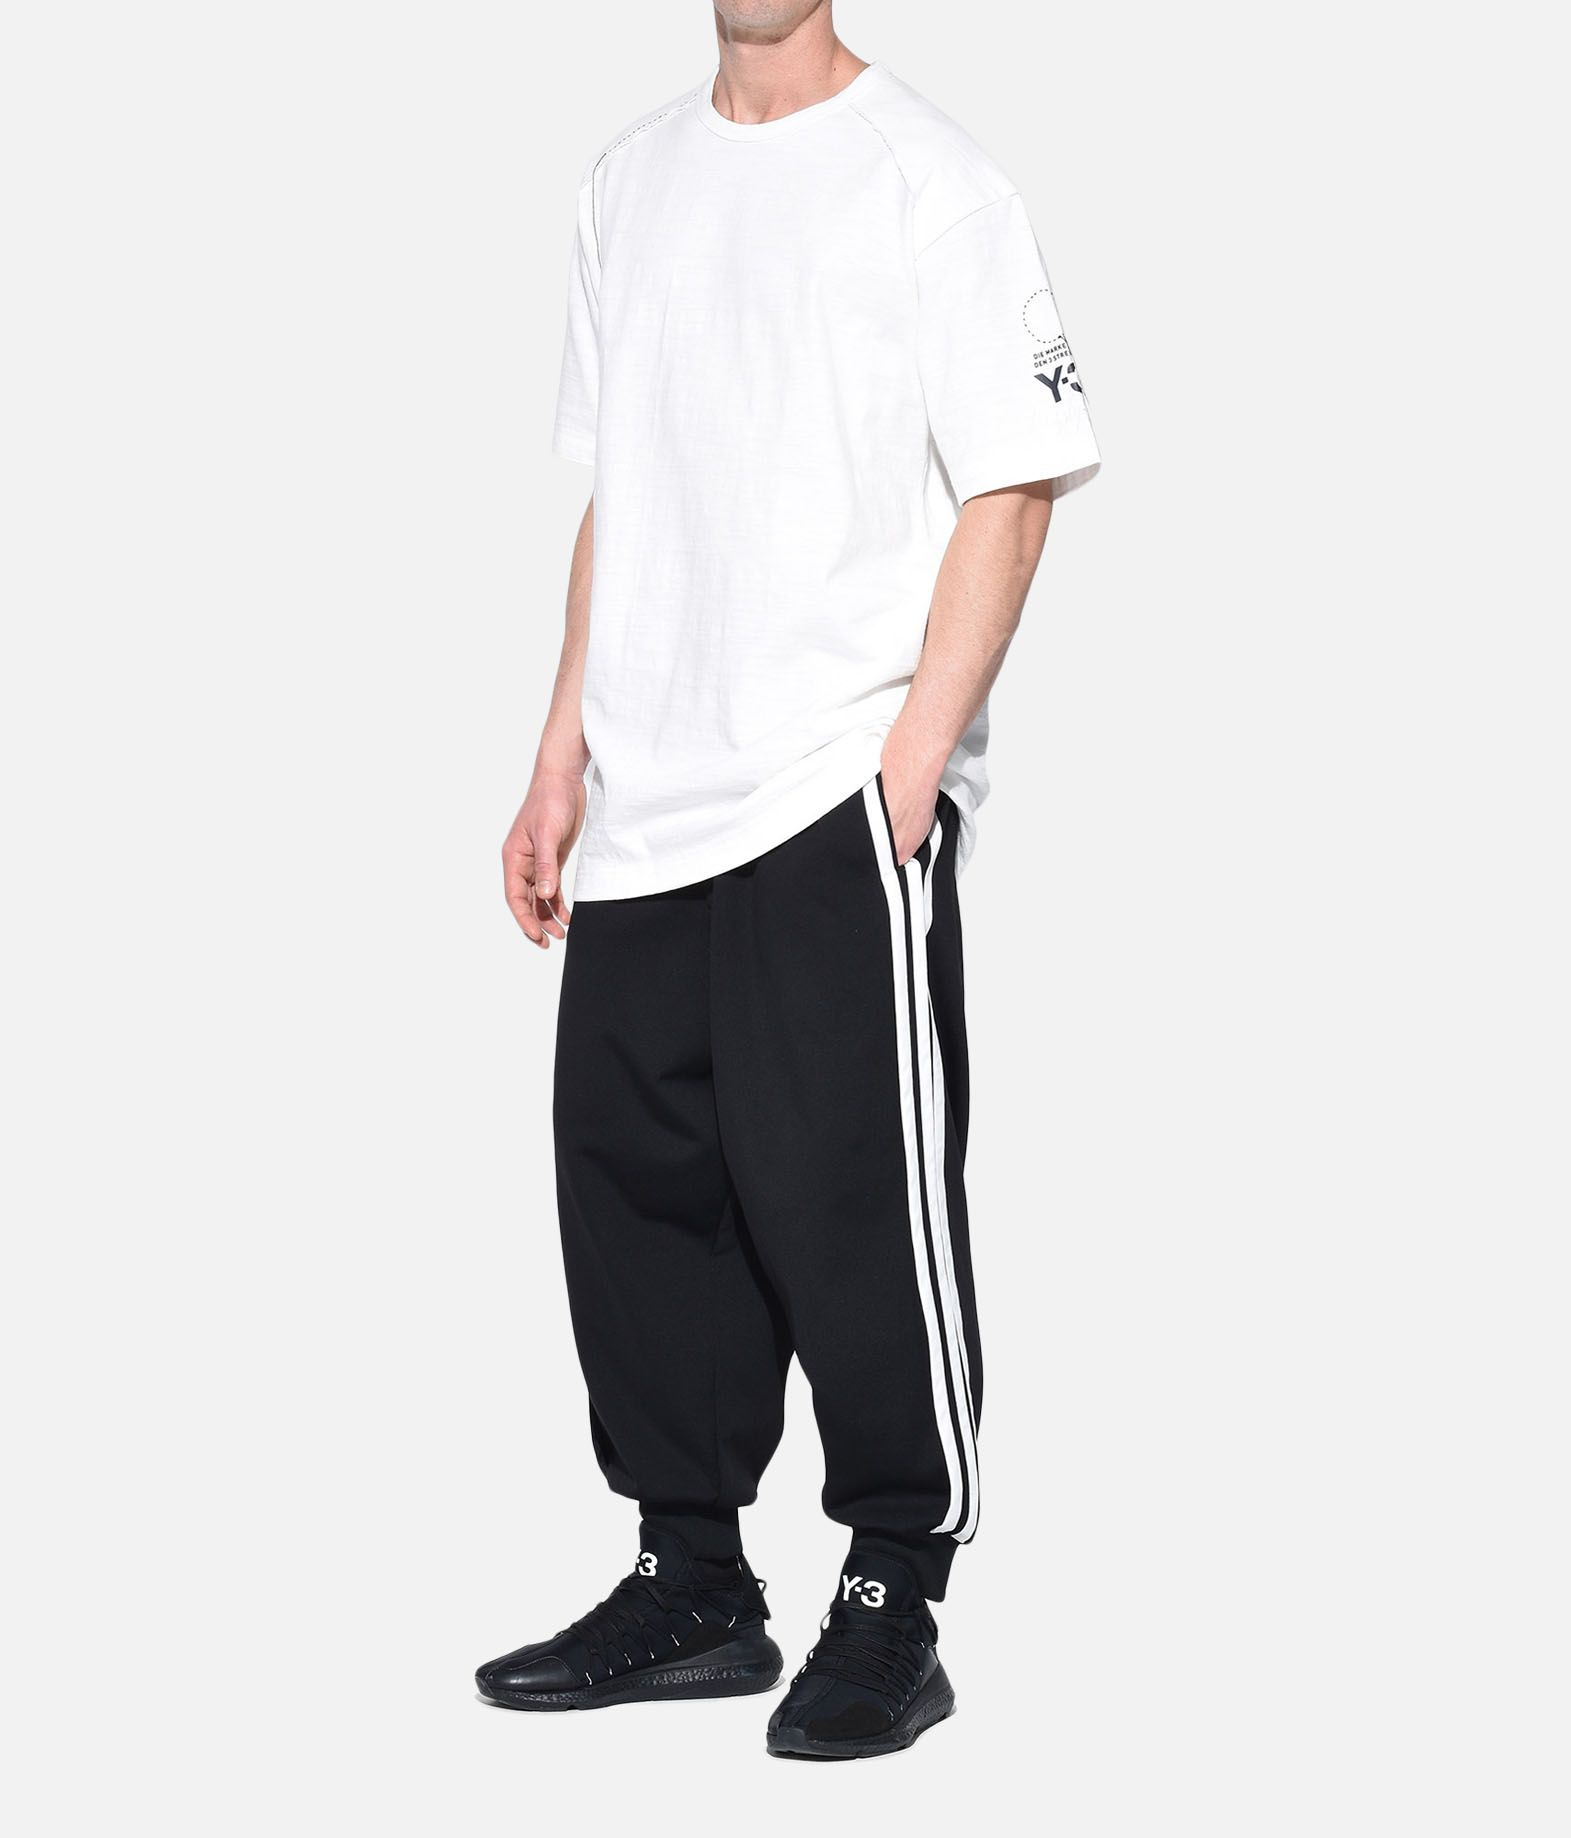 Y-3 Y-3 Sashiko Tee Short sleeve t-shirt Man a